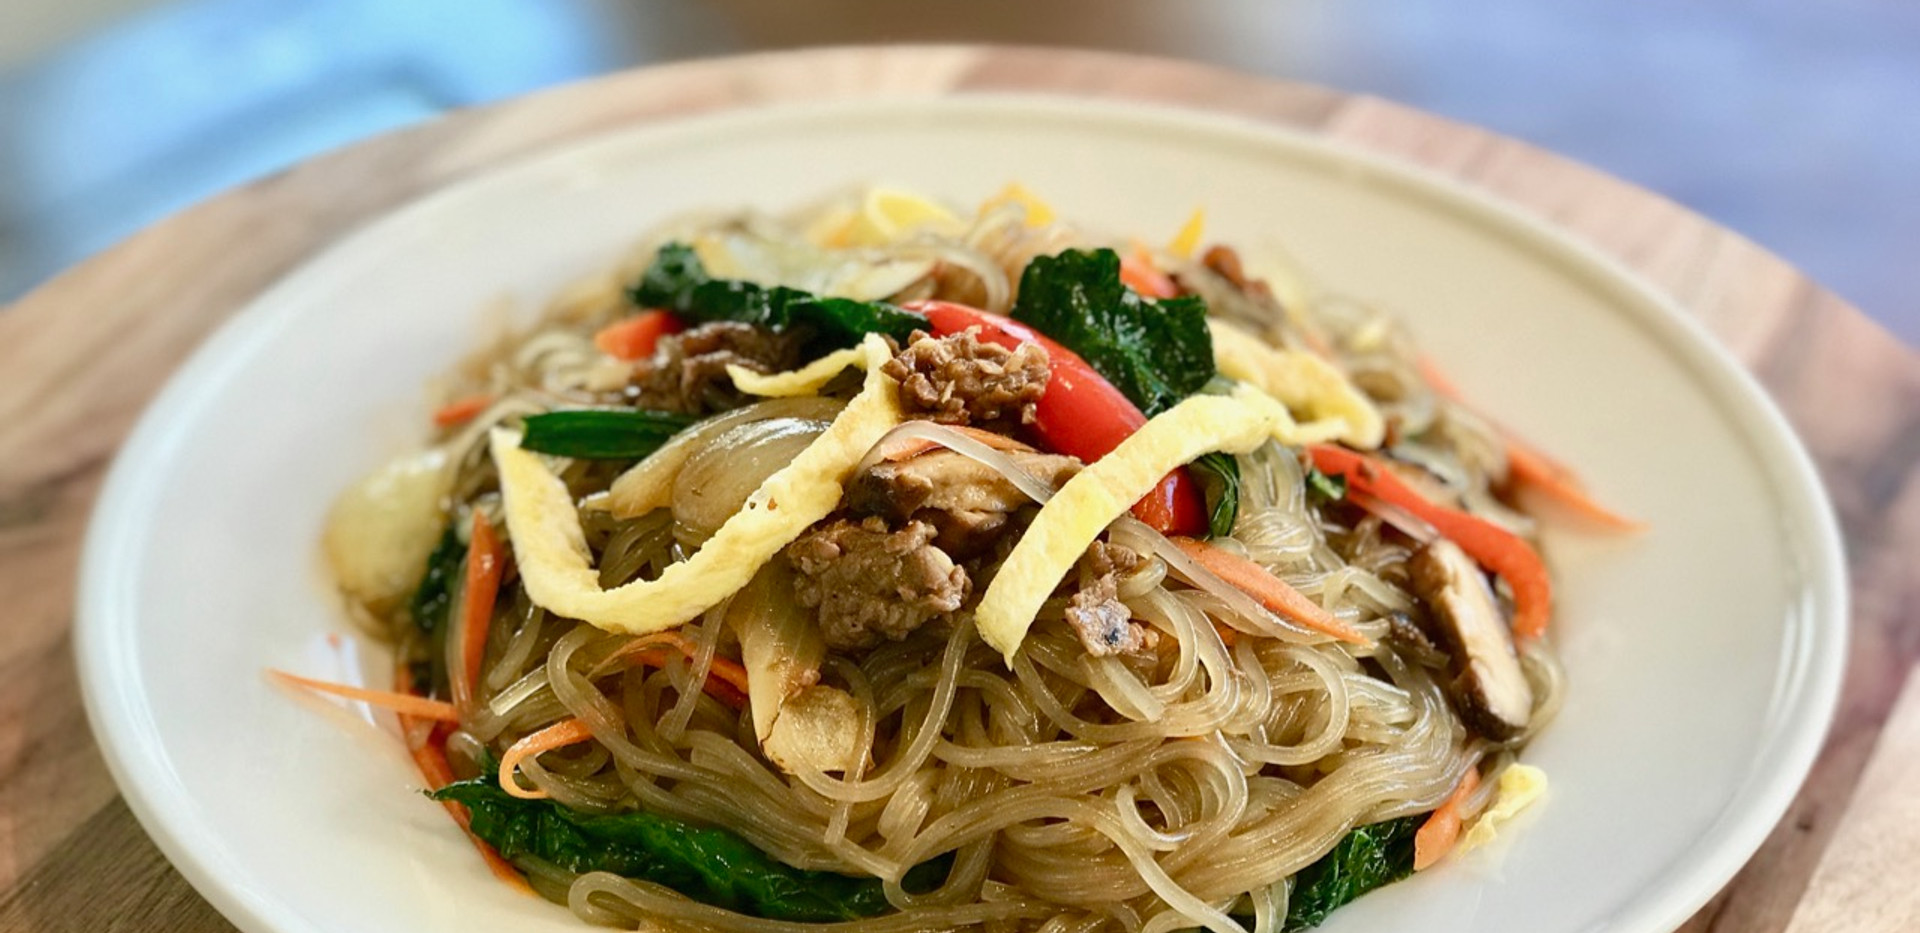 JapChae Recipe 잡채: Korean Sweet Potato Glass Noodles Stir-Fried w Vegetables + Vegan JapChae; (잡채 황금레시피)